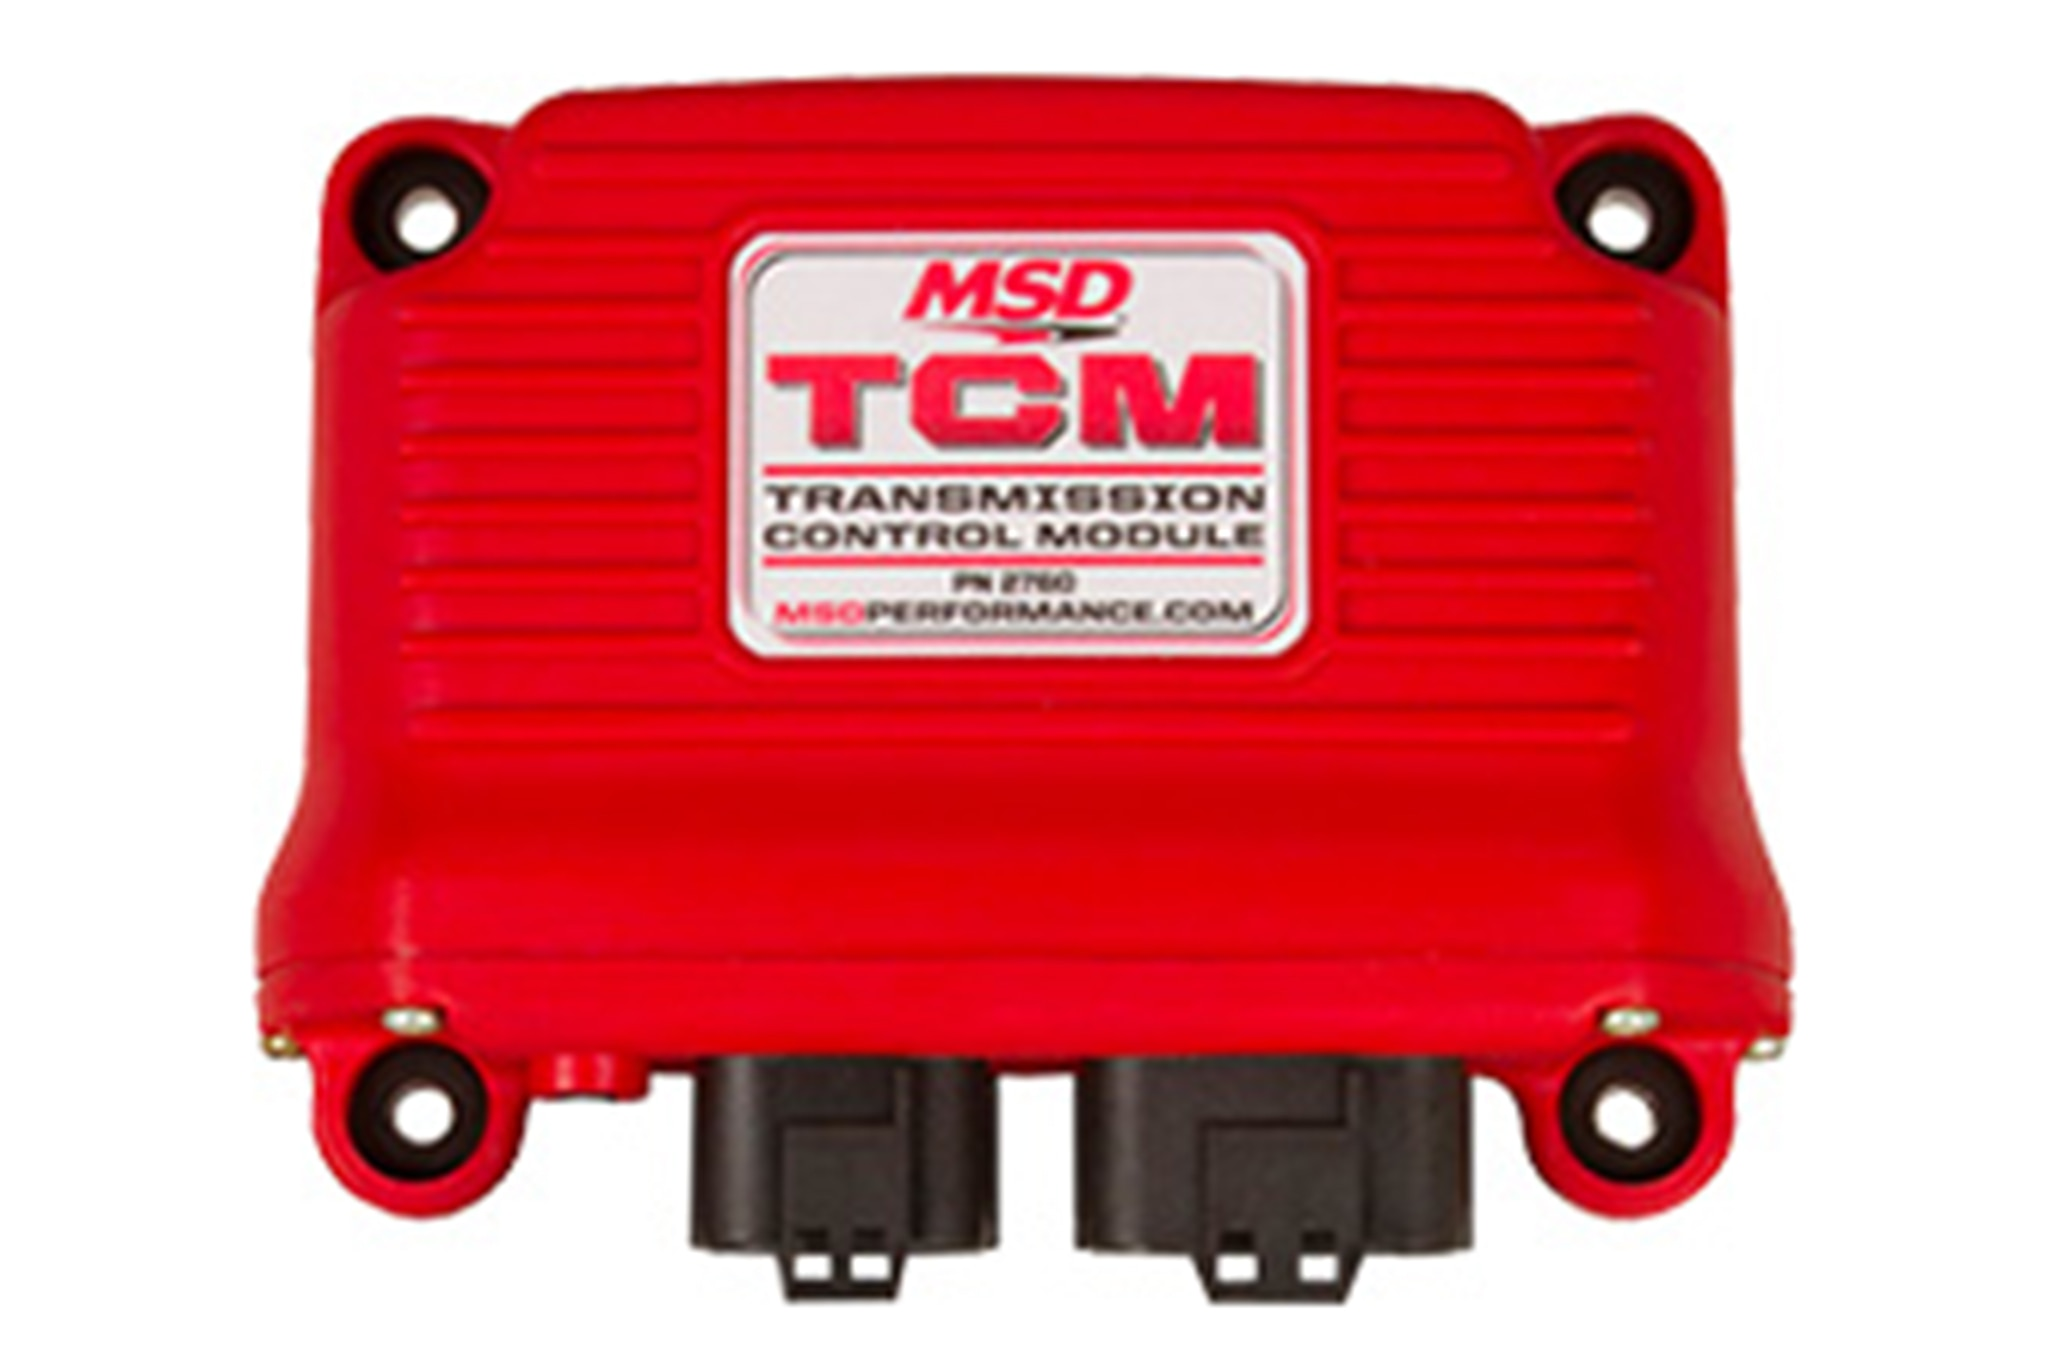 5 Msd Transmission Control Unit